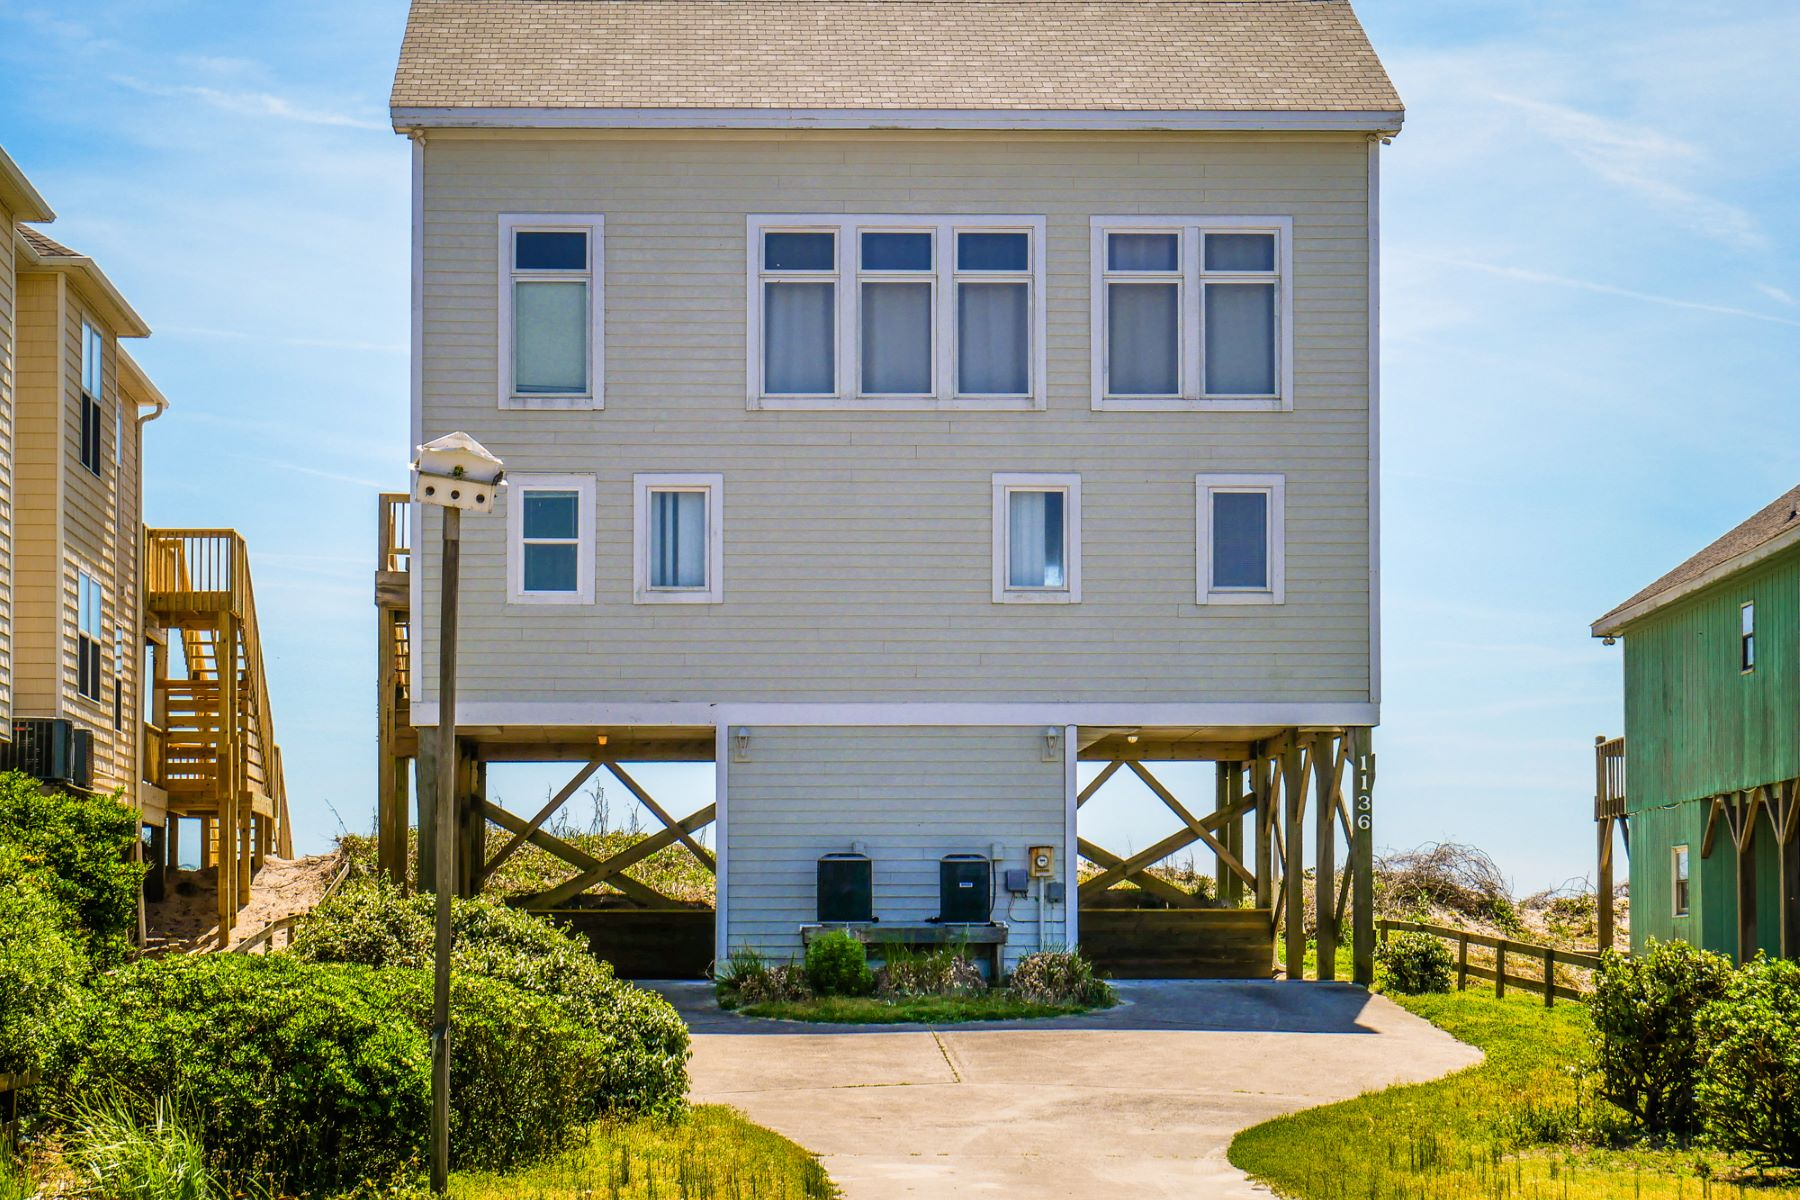 Single Family Homes for Active at Oceanfront Home in Coveted Area 1136 S Shore Drive Surf City, North Carolina 28445 United States